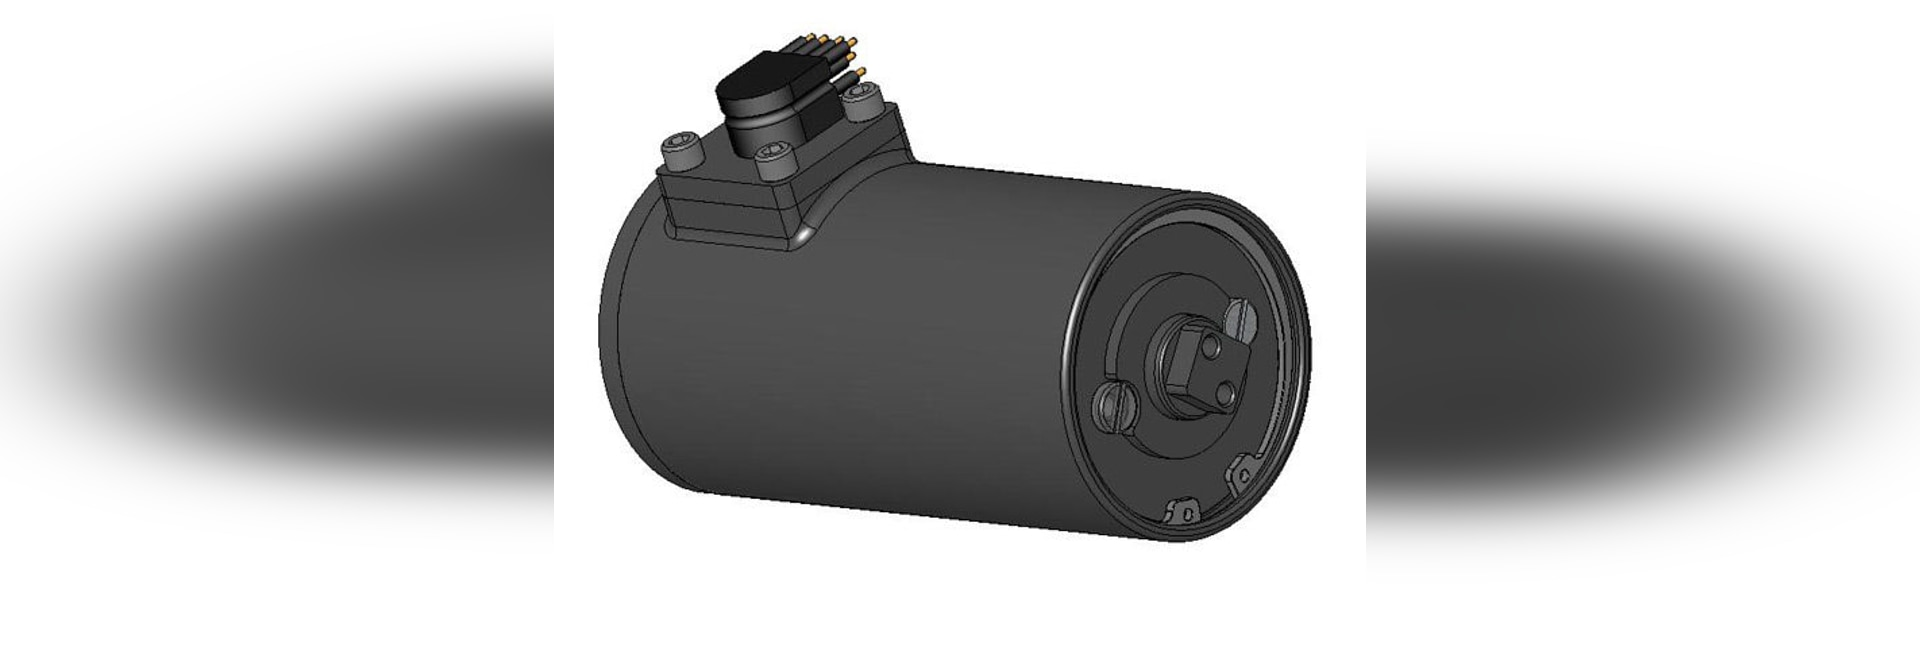 NEW: underwater video camera positioning system by Sidus Solutions